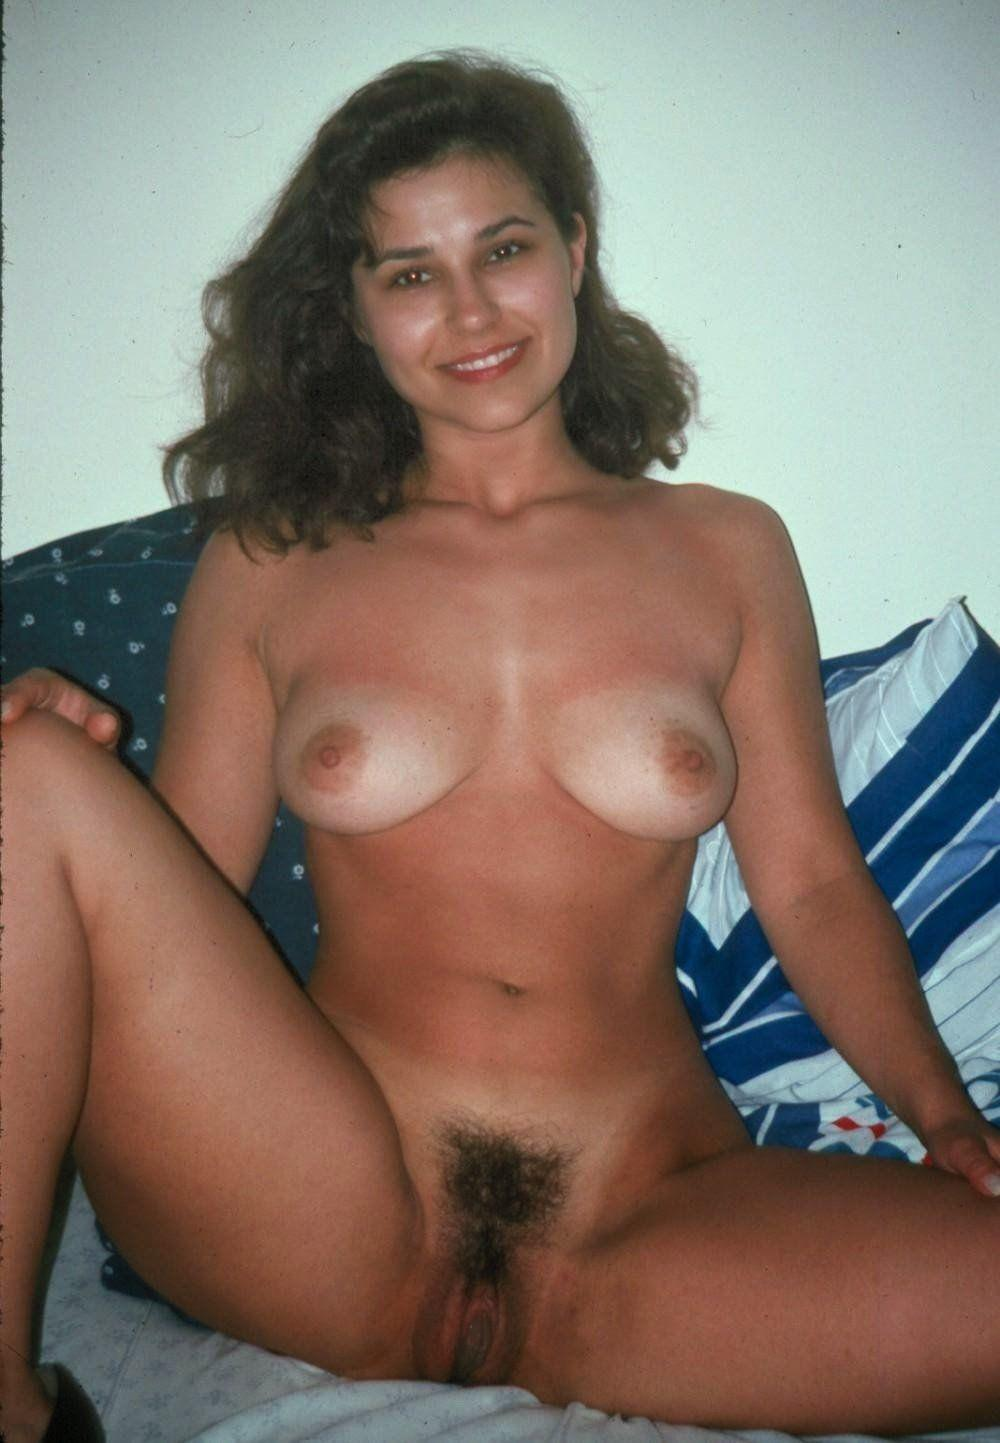 Vet reccomend Poast amateur free nudes of wife